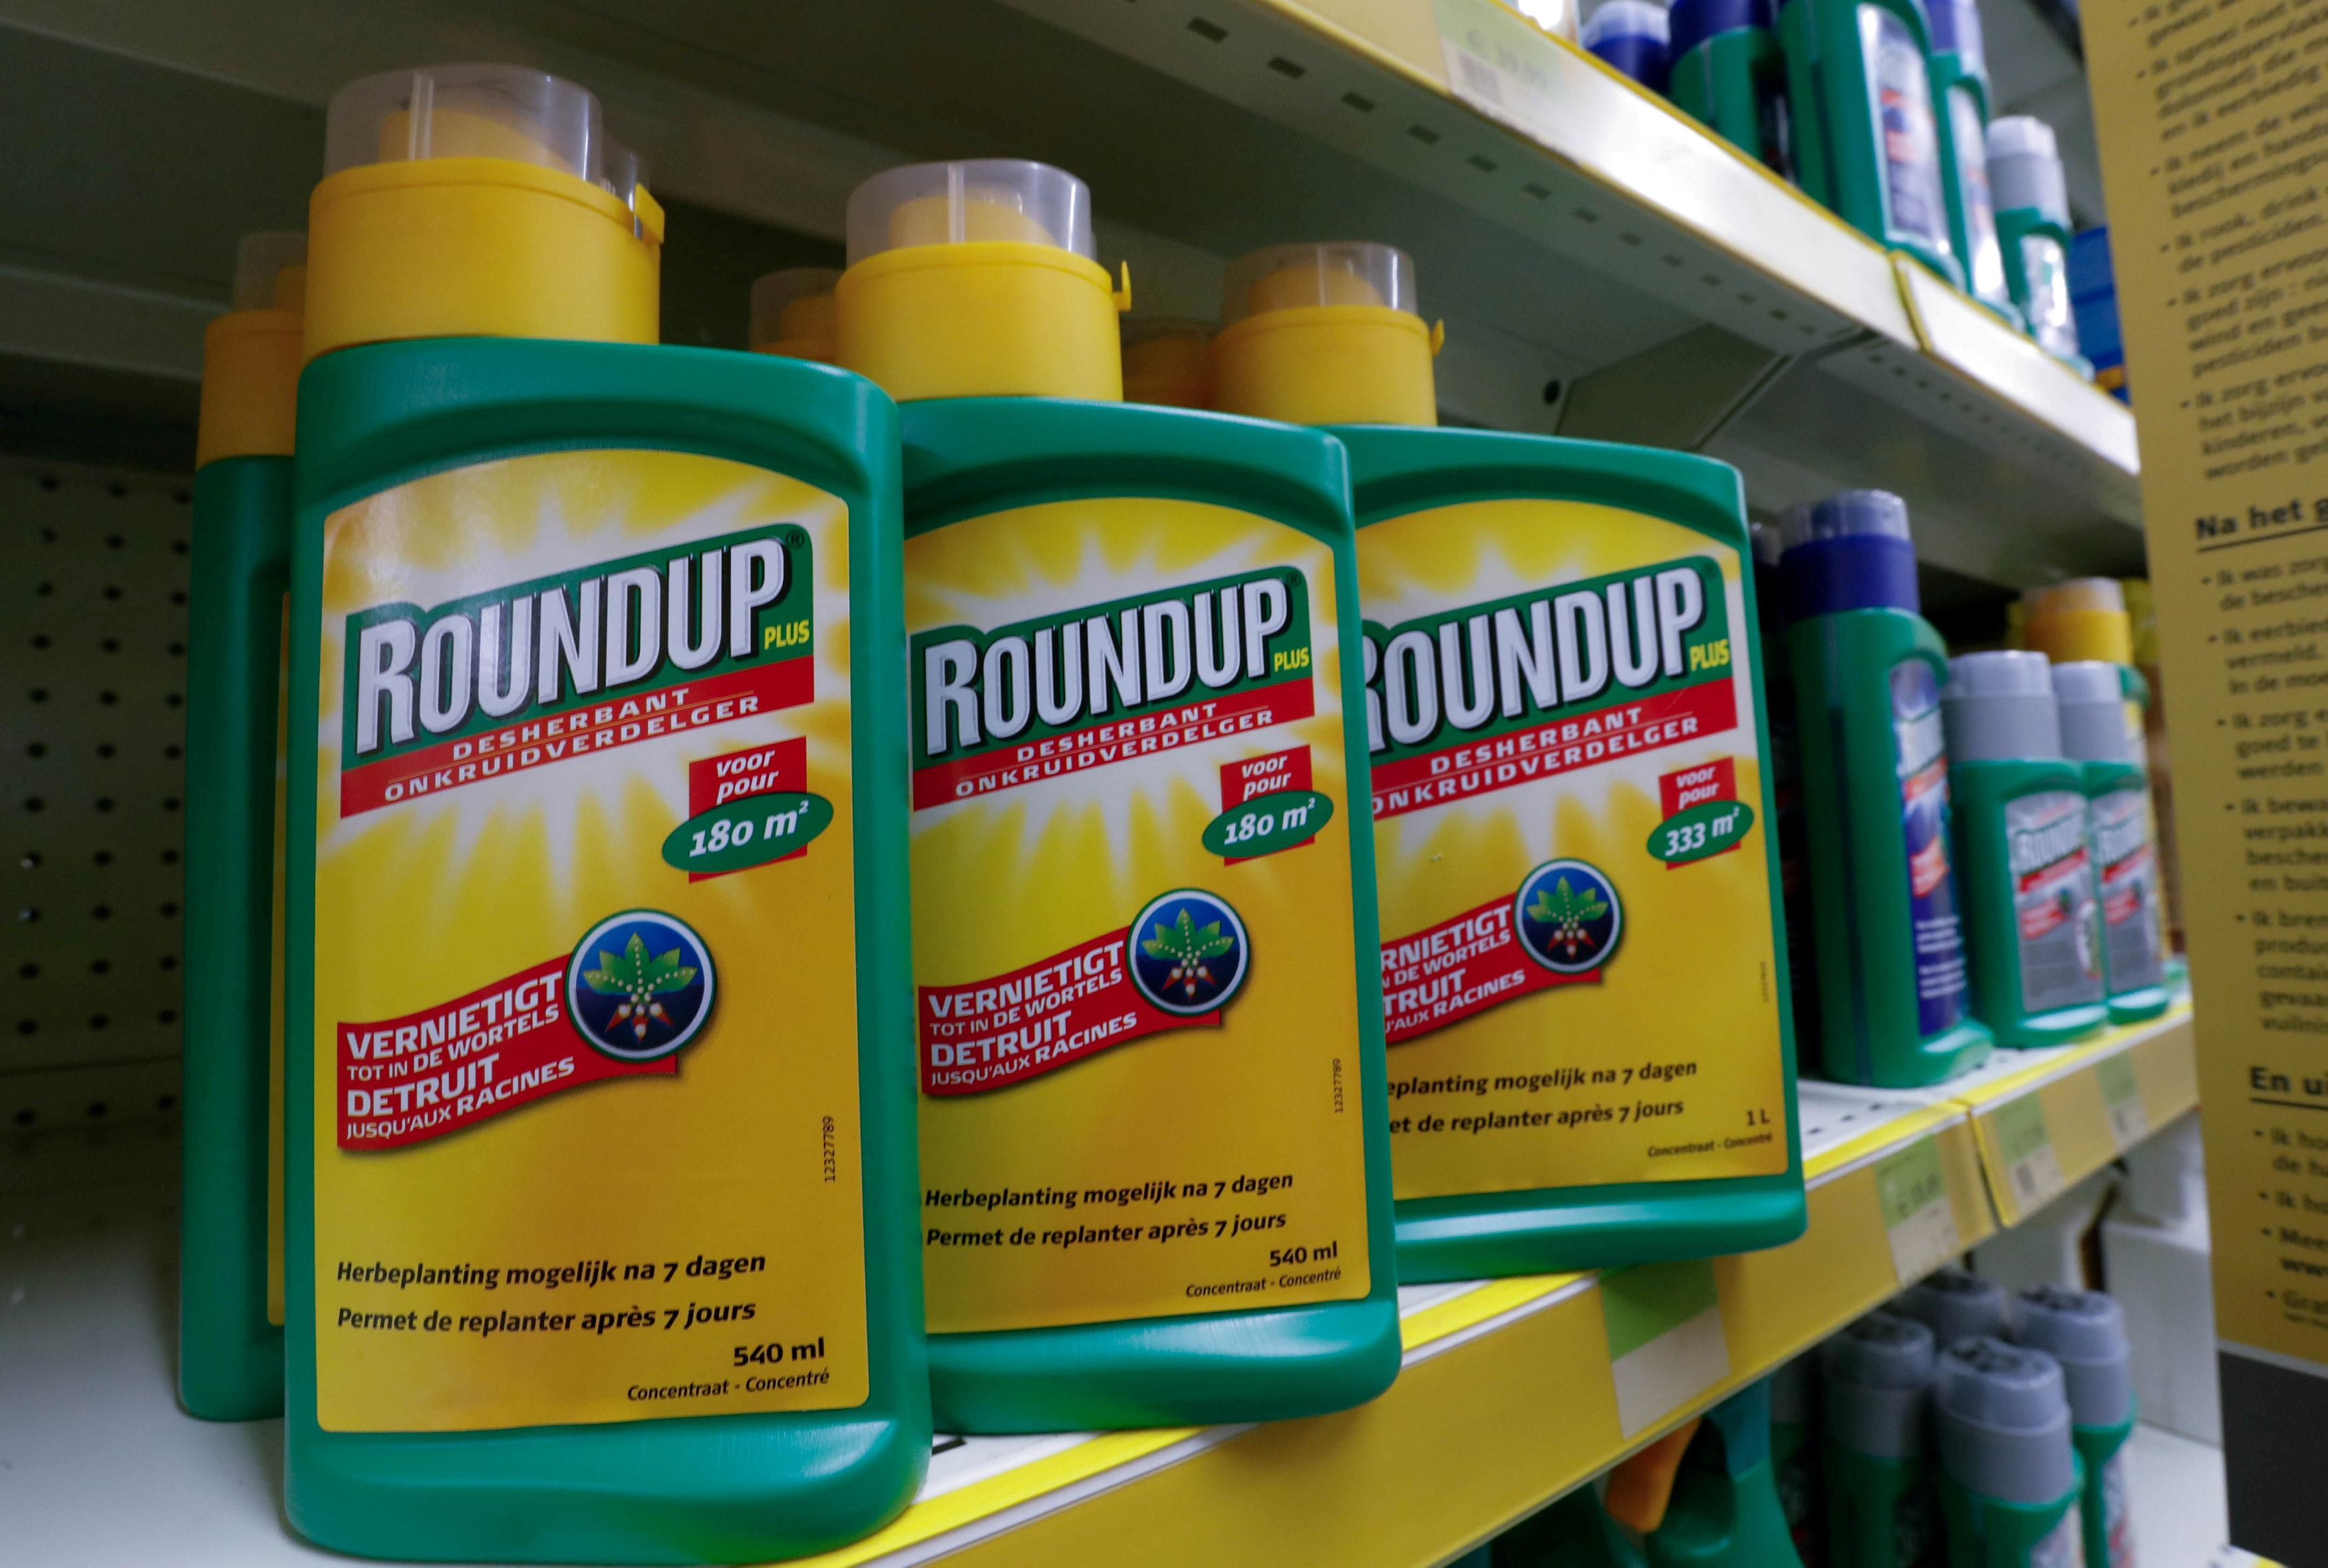 Monsanto's Roundup weedkiller atomizers